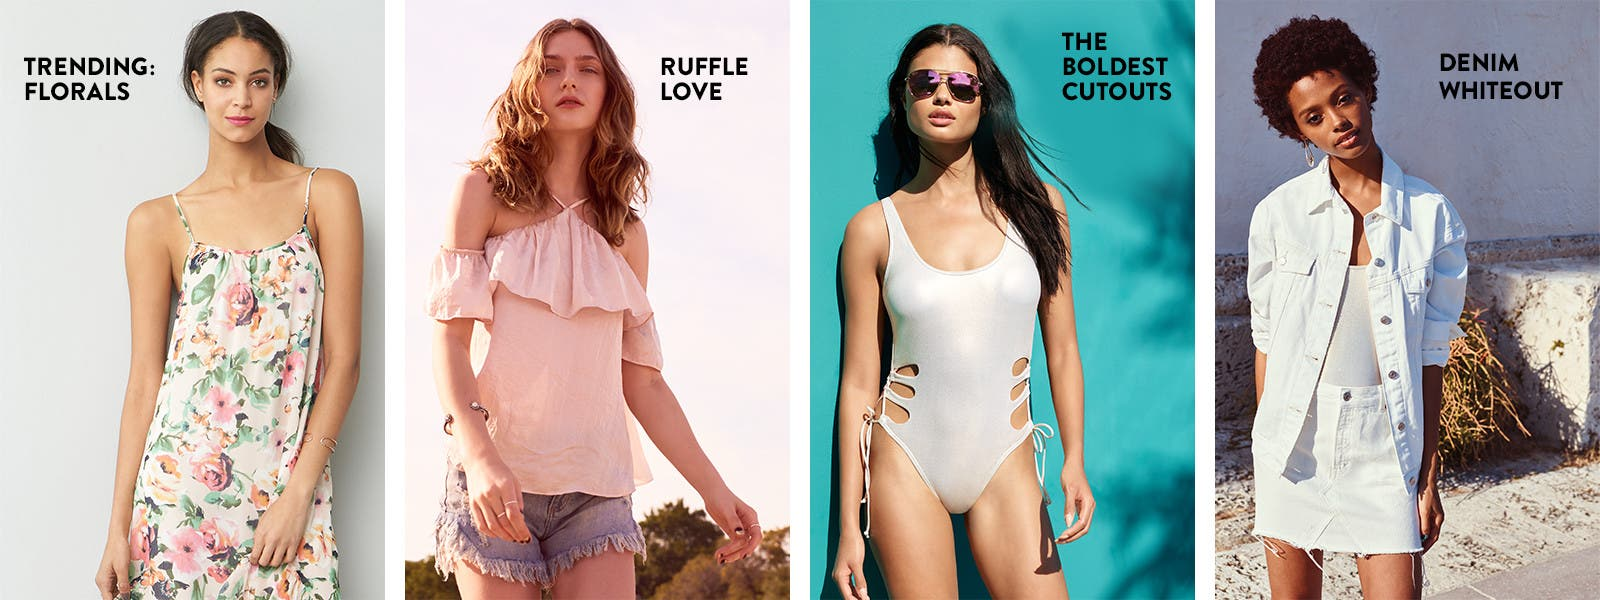 Floral prints are now trending. / Ruffle love. / Swimsuits with bold cutouts. / White denim for women.